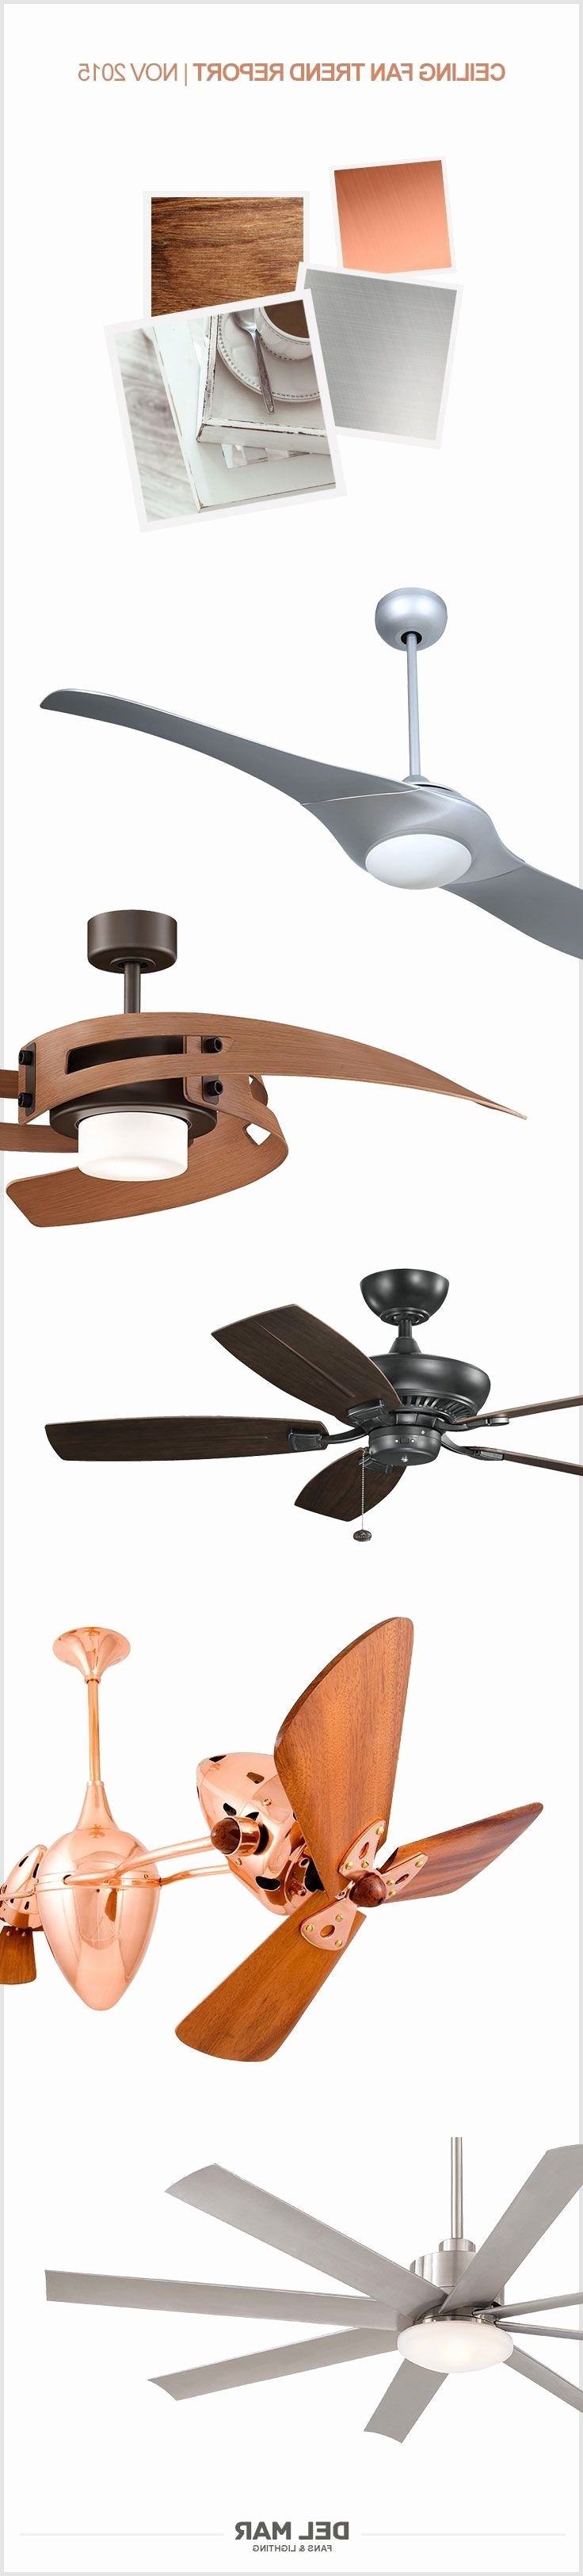 High Cfm Ceiling Fan Outdoor – Ceiling Design Ideas Regarding Fashionable Outdoor Ceiling Fans With High Cfm (Gallery 14 of 20)